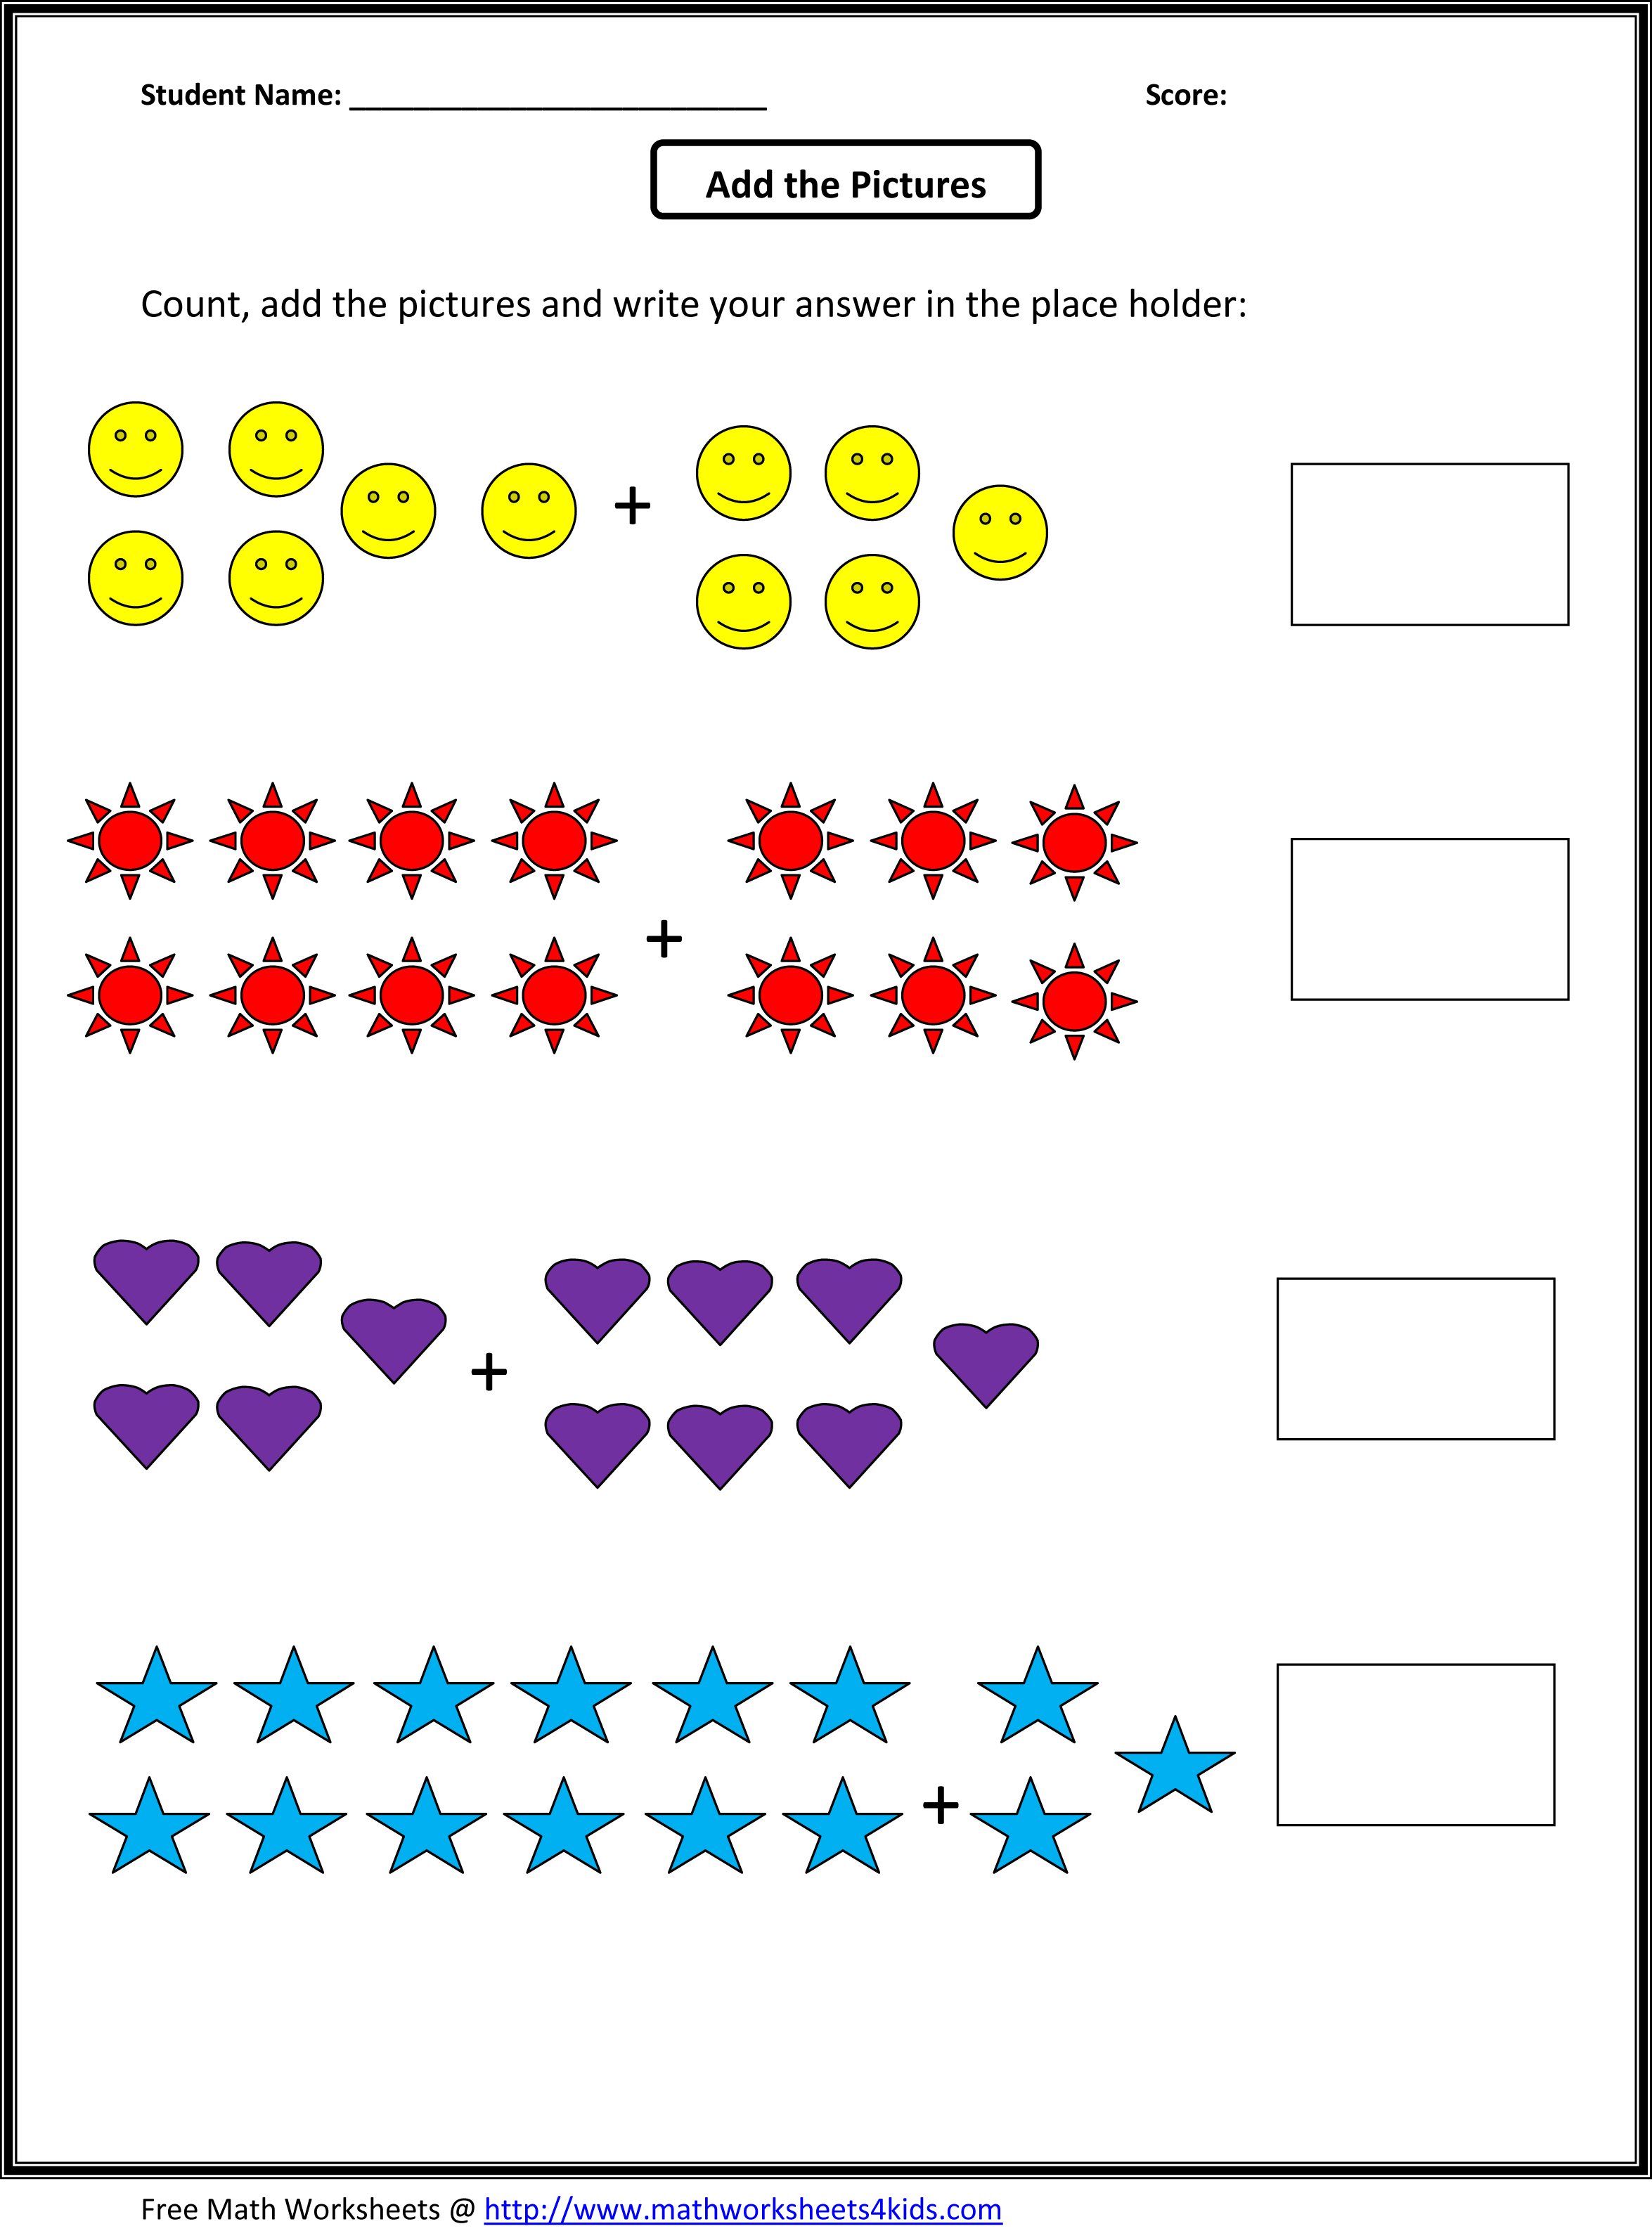 Weirdmailus  Pleasing Grade  Maths Worksheet  Reocurent With Glamorous Math Worksheets For St Grade Free  Reocurent With Extraordinary Practice Abc Writing Worksheets Also Osmosis And Tonicity Worksheet Answers In Addition Addition And Subtraction Of Fractions Worksheets And Sats Worksheets Ks As Well As Frankenstein Worksheets Additionally Student Learning Goals Worksheet From Reocurentcom With Weirdmailus  Glamorous Grade  Maths Worksheet  Reocurent With Extraordinary Math Worksheets For St Grade Free  Reocurent And Pleasing Practice Abc Writing Worksheets Also Osmosis And Tonicity Worksheet Answers In Addition Addition And Subtraction Of Fractions Worksheets From Reocurentcom